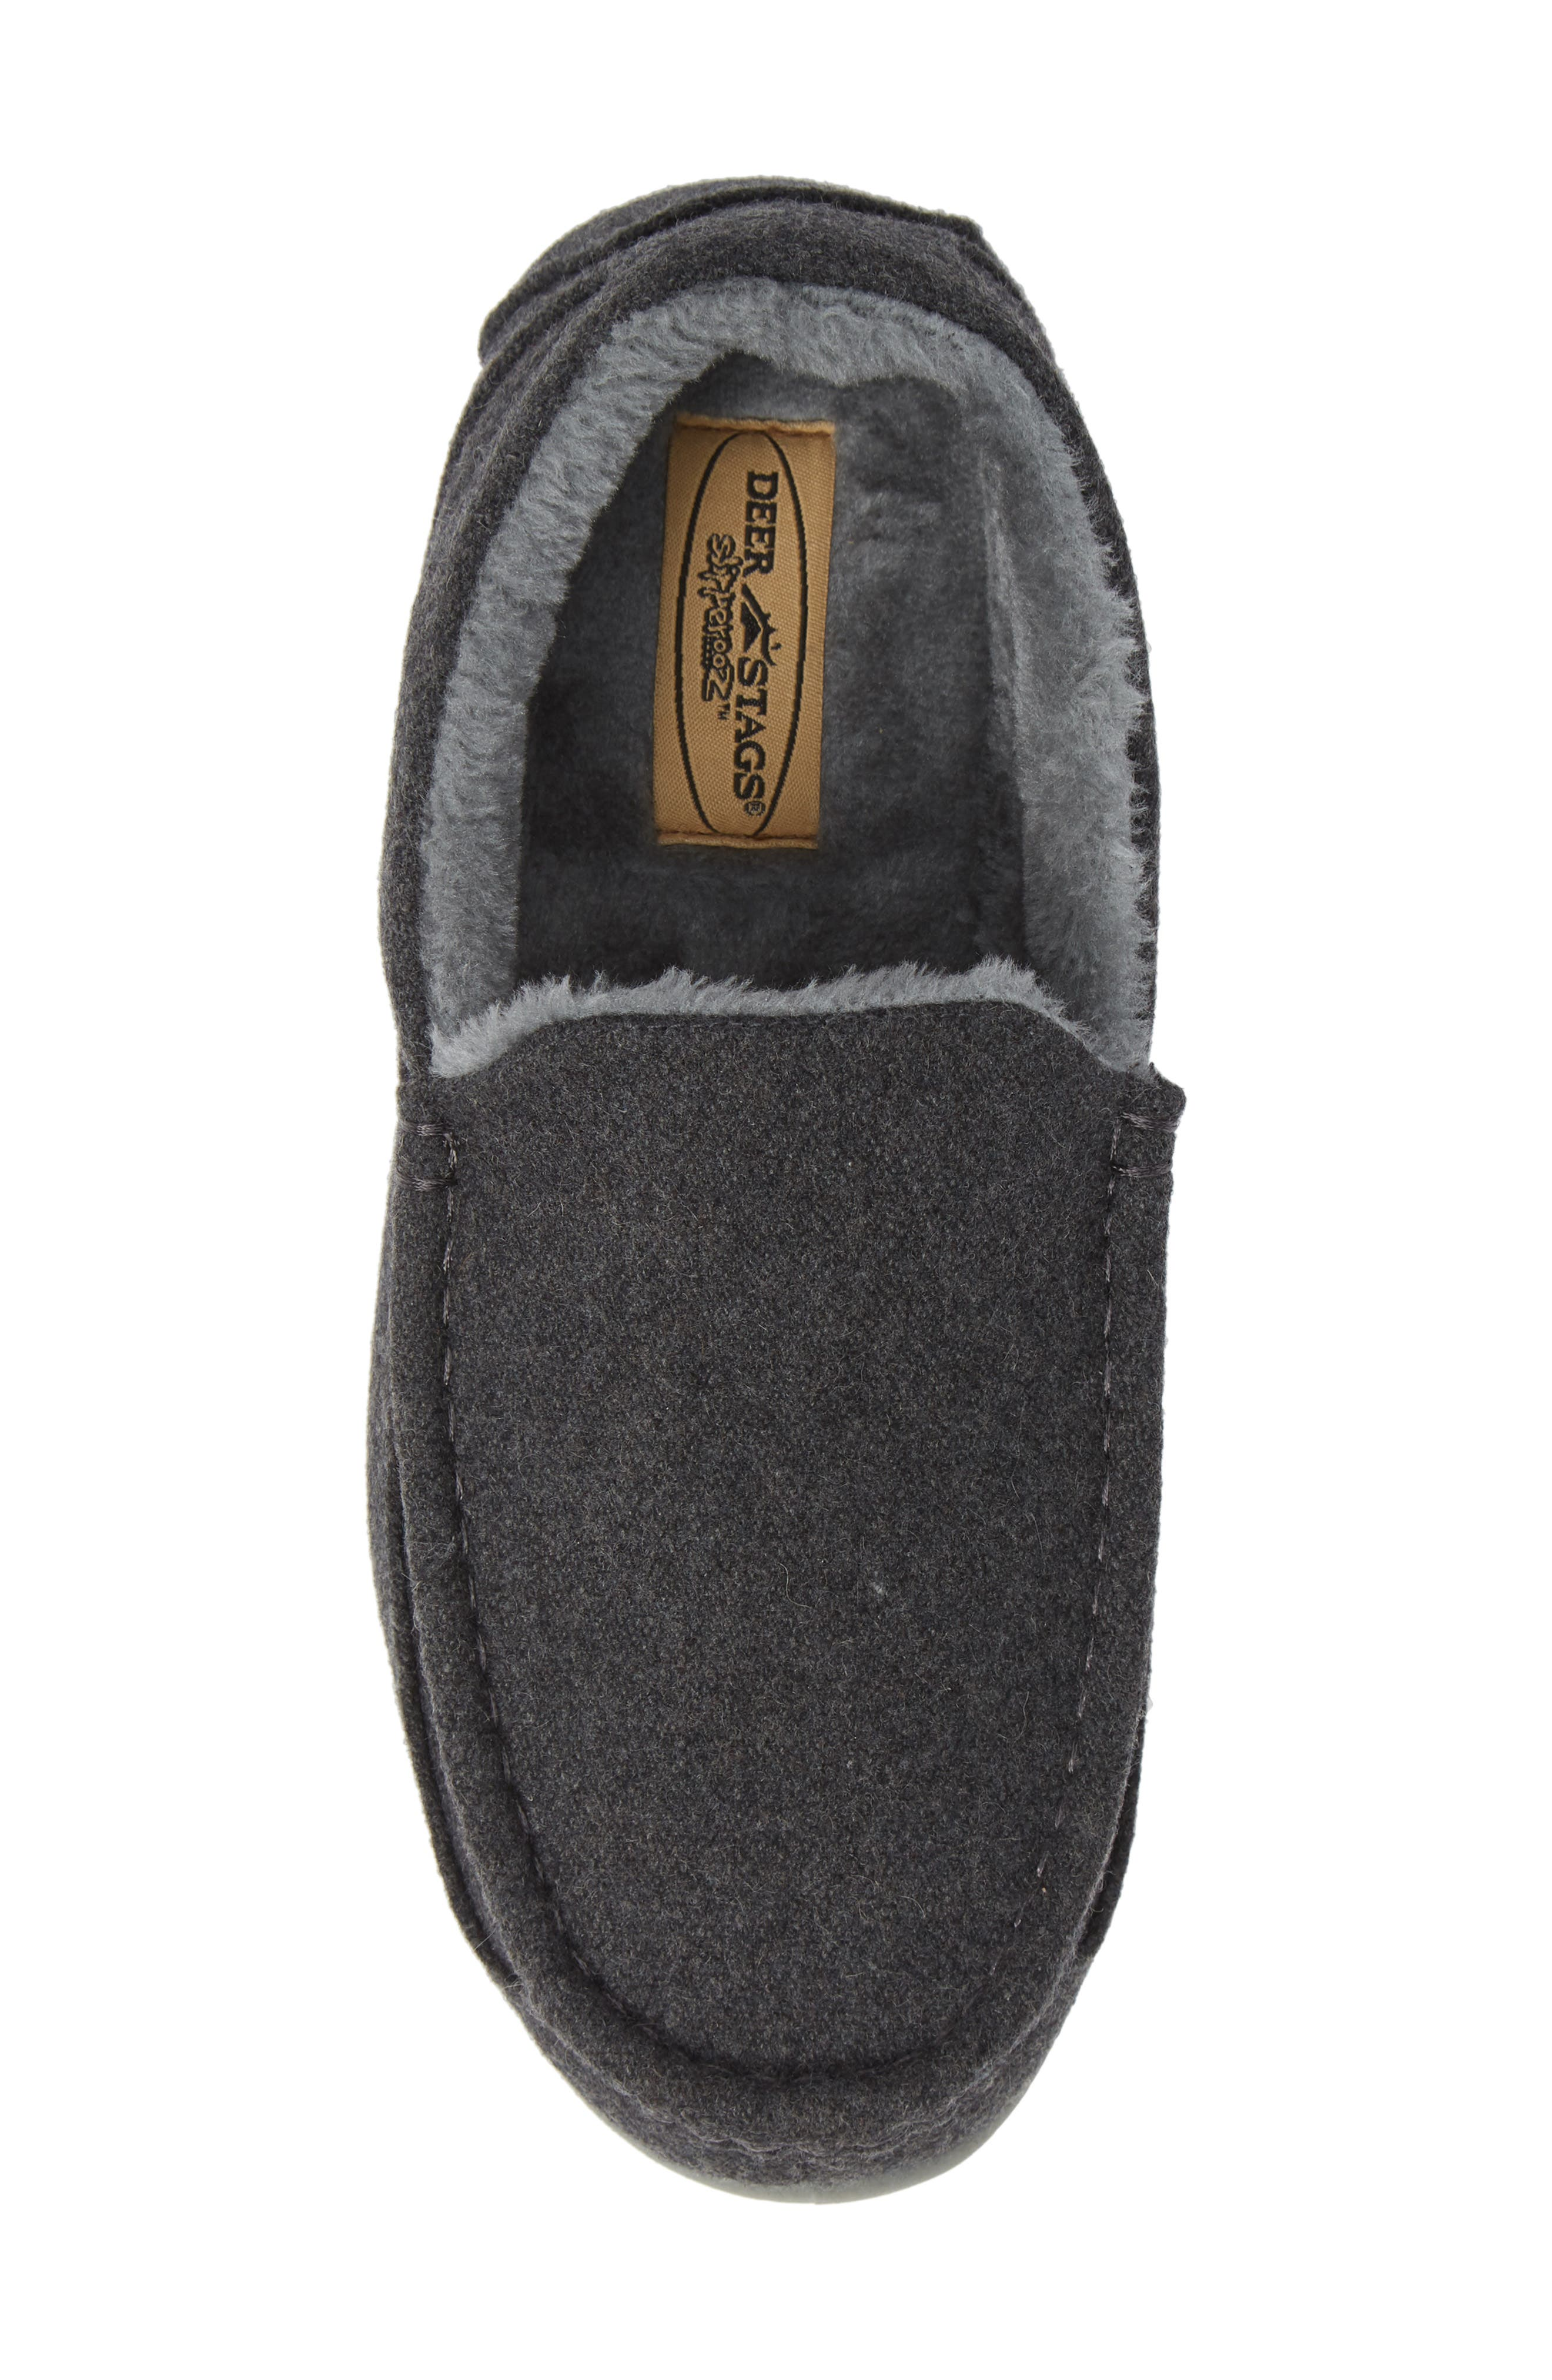 Spun Slipper,                             Alternate thumbnail 5, color,                             DARK GREY